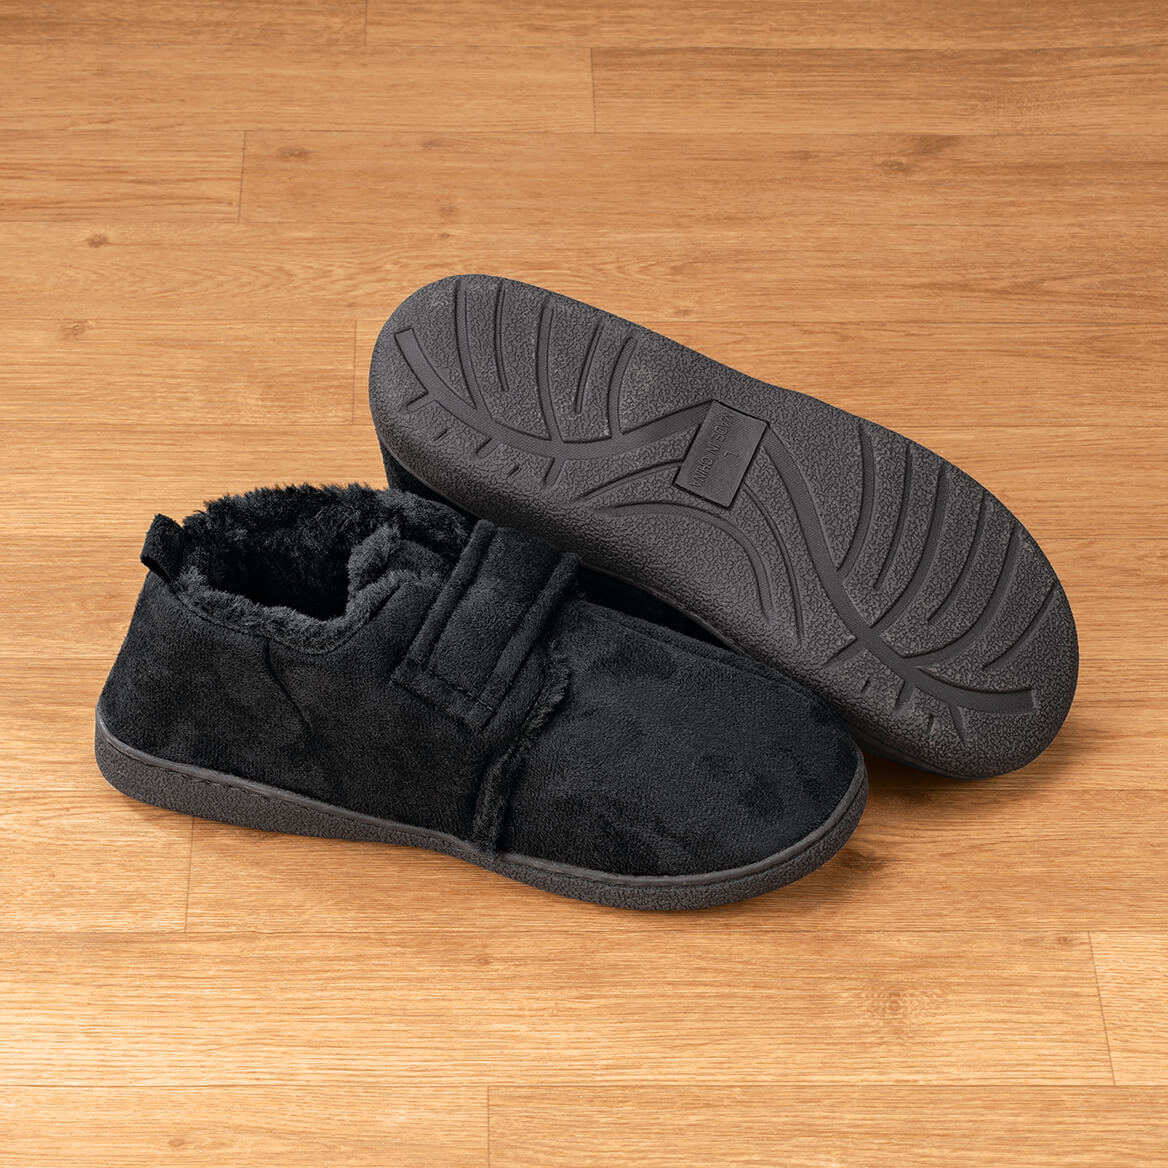 Diabetic Comfort Slippers Mens-369906